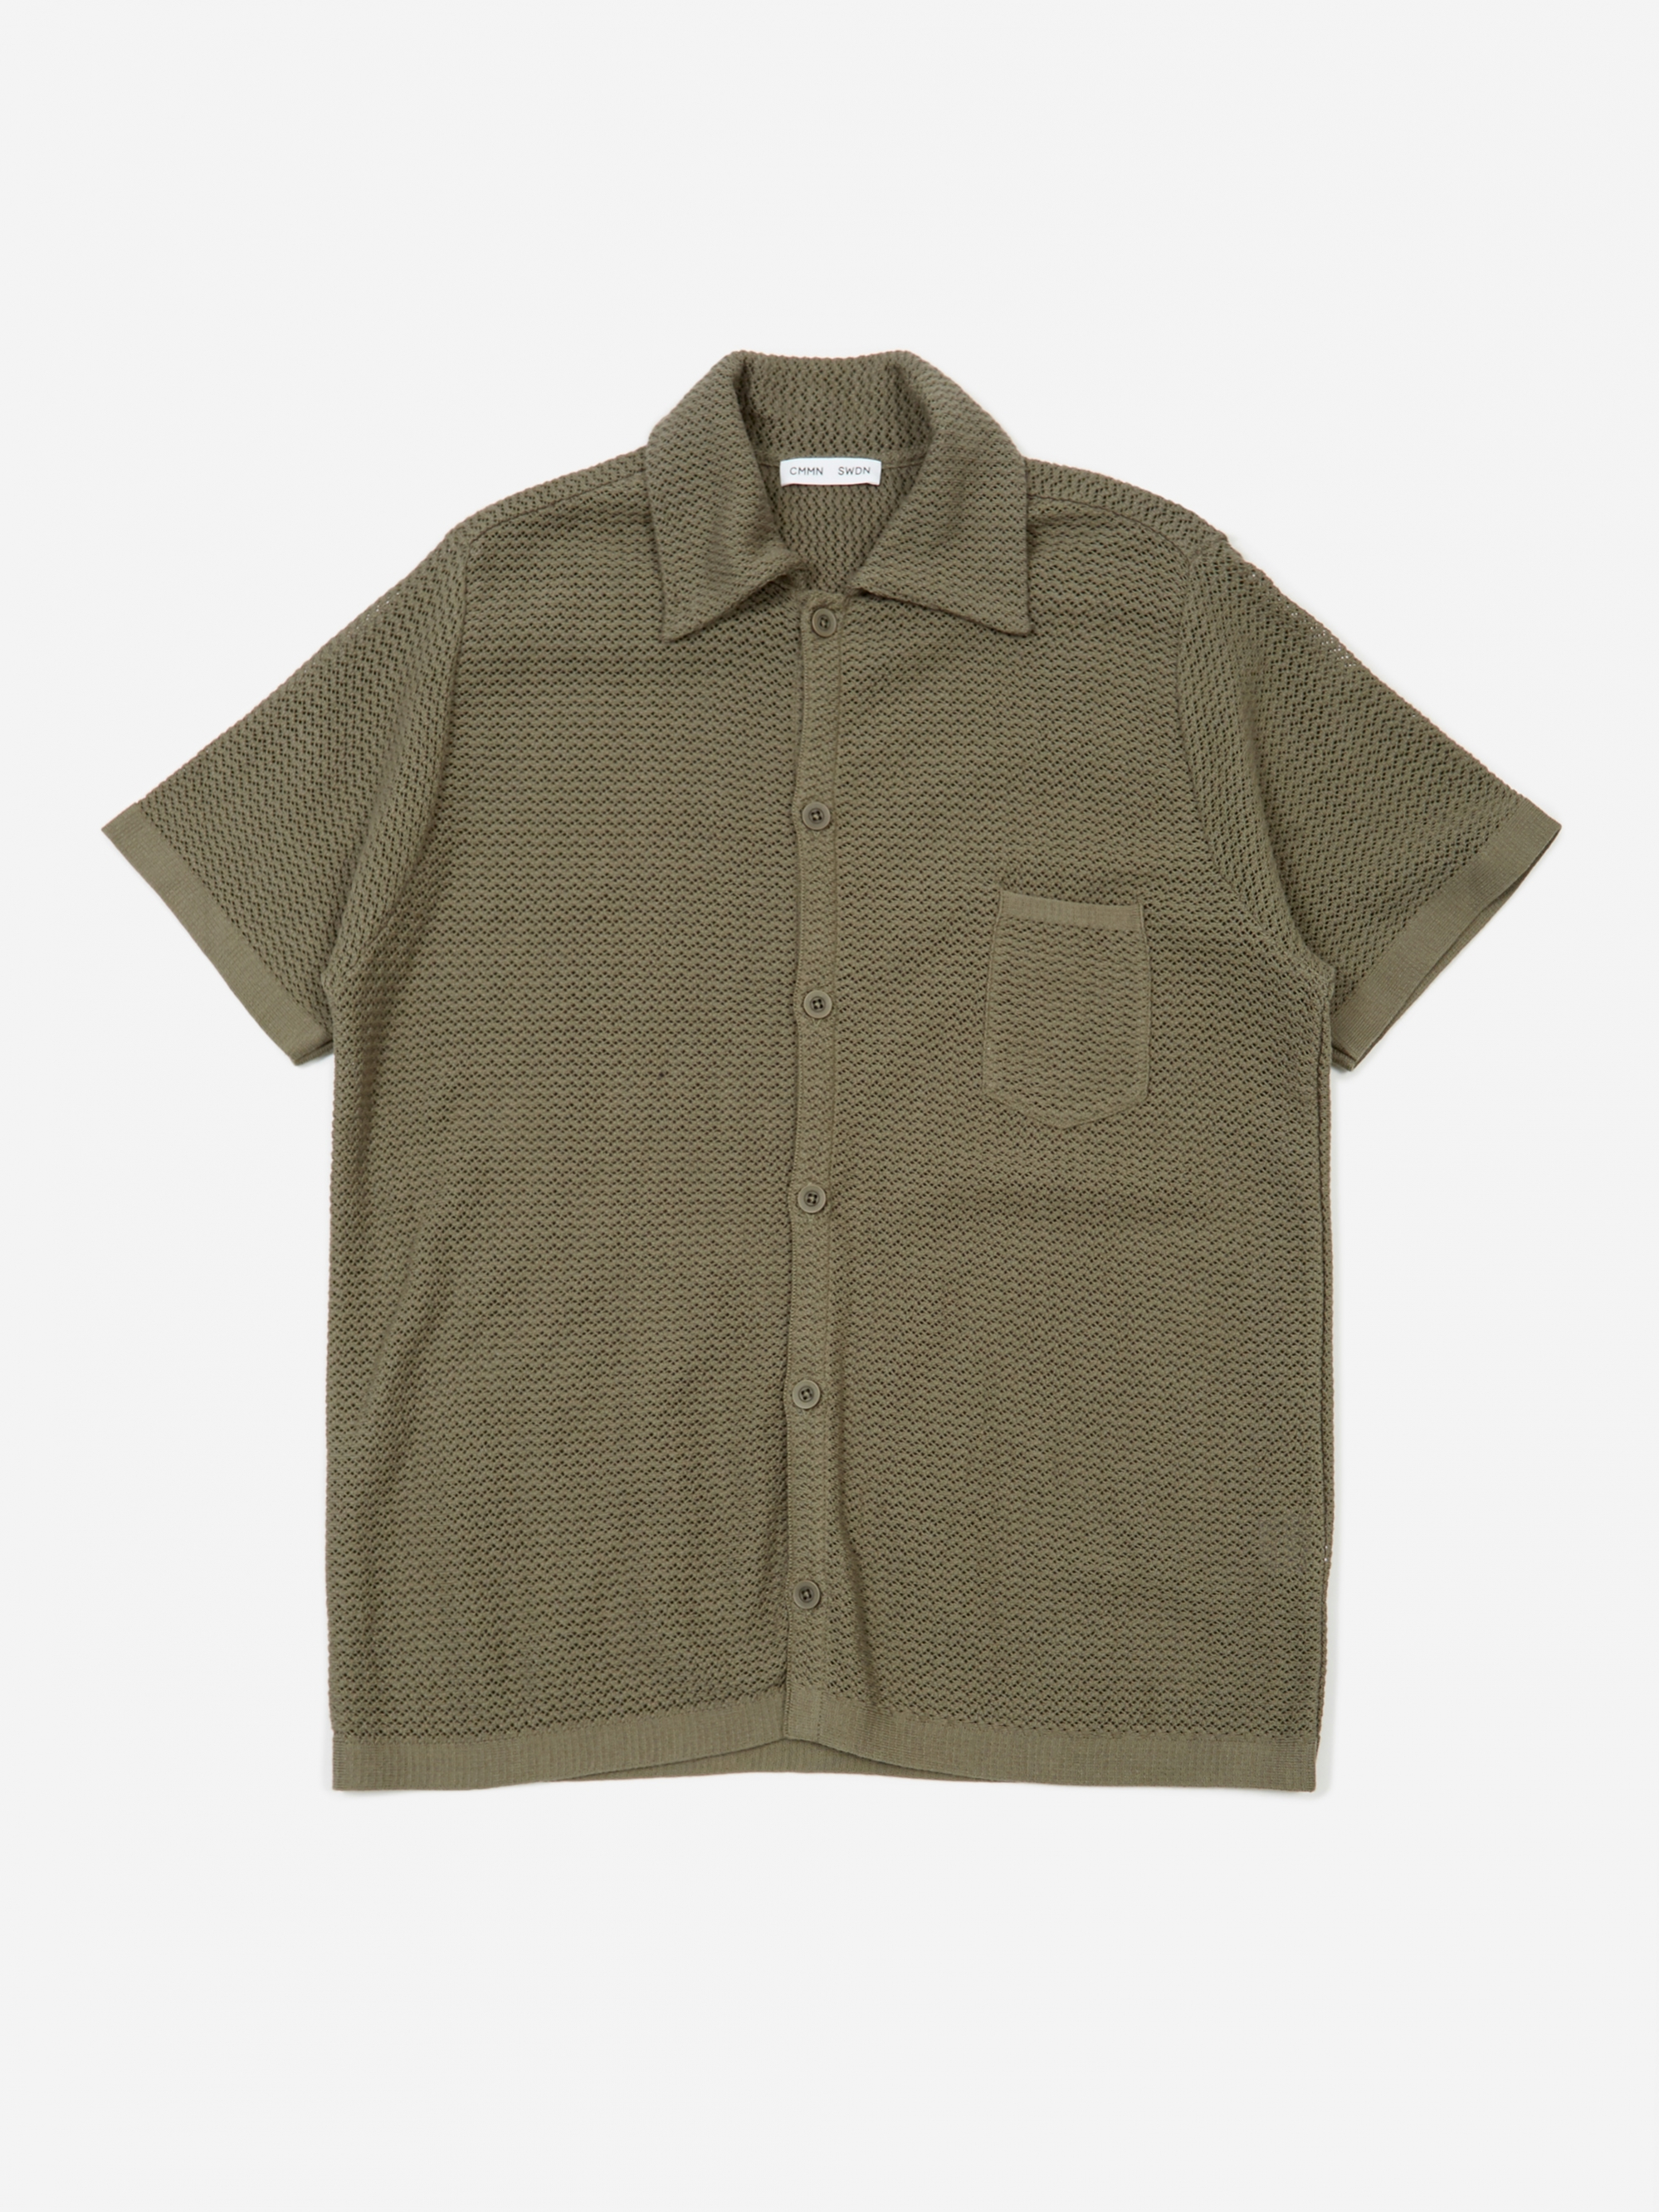 6a463b2588 CMMN SWDN Wes Knitted Short Sleeve Shirt - Grey